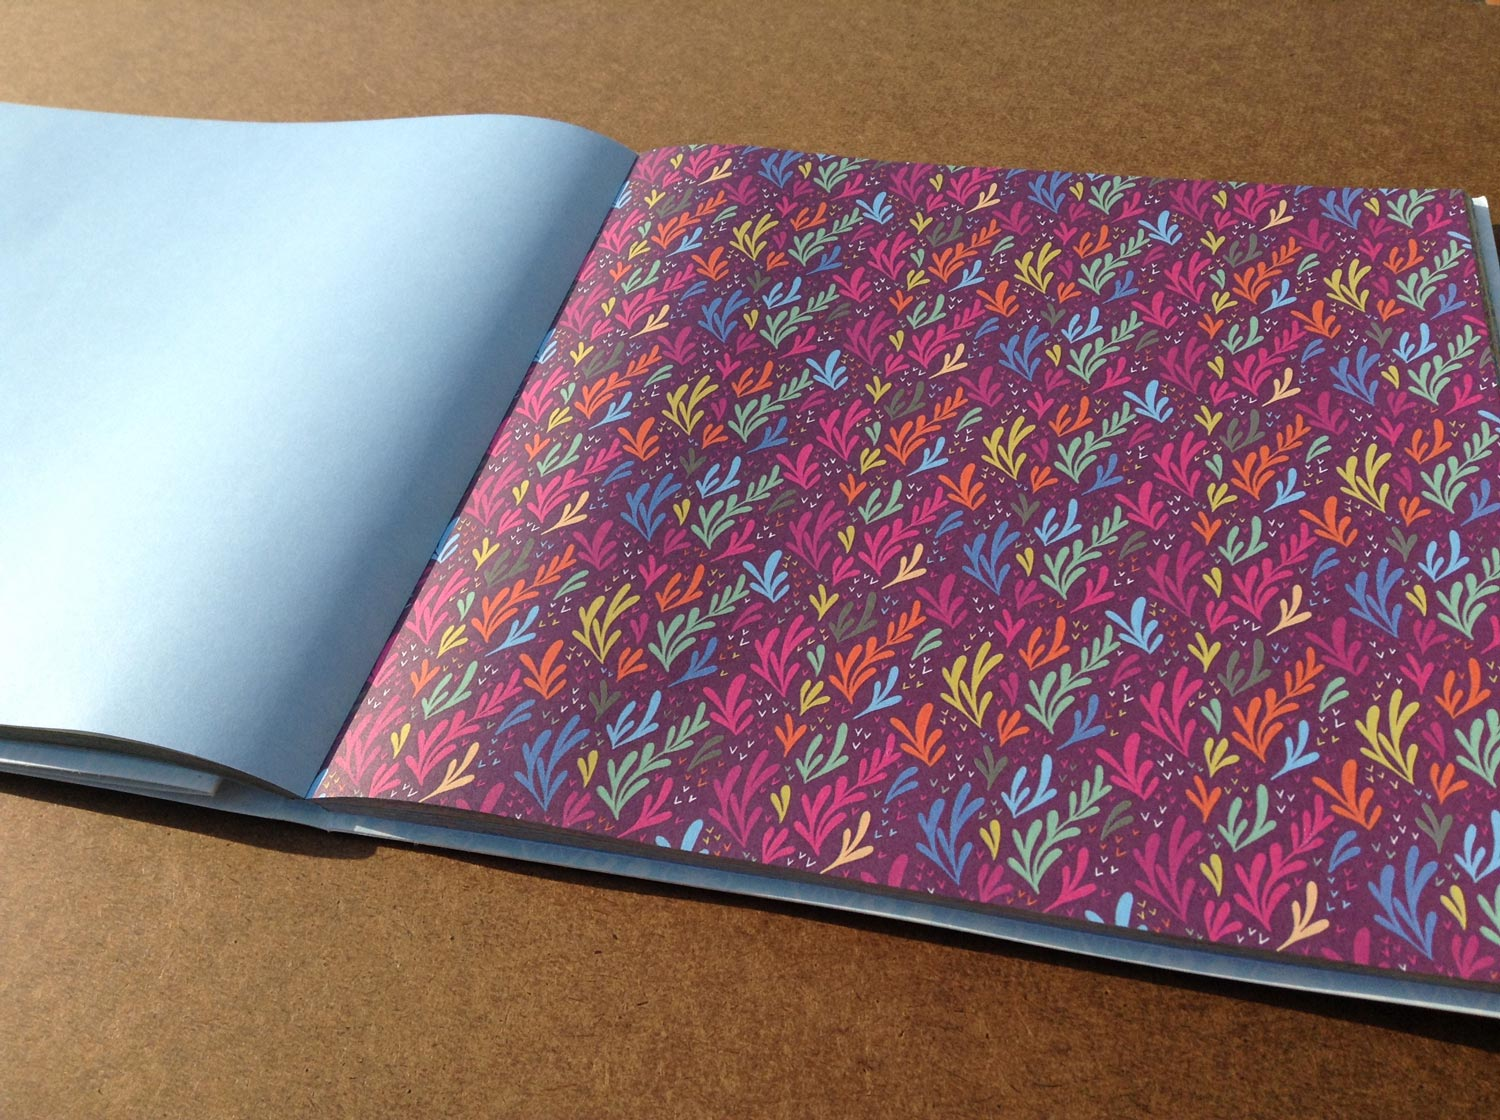 Origami book spread 2